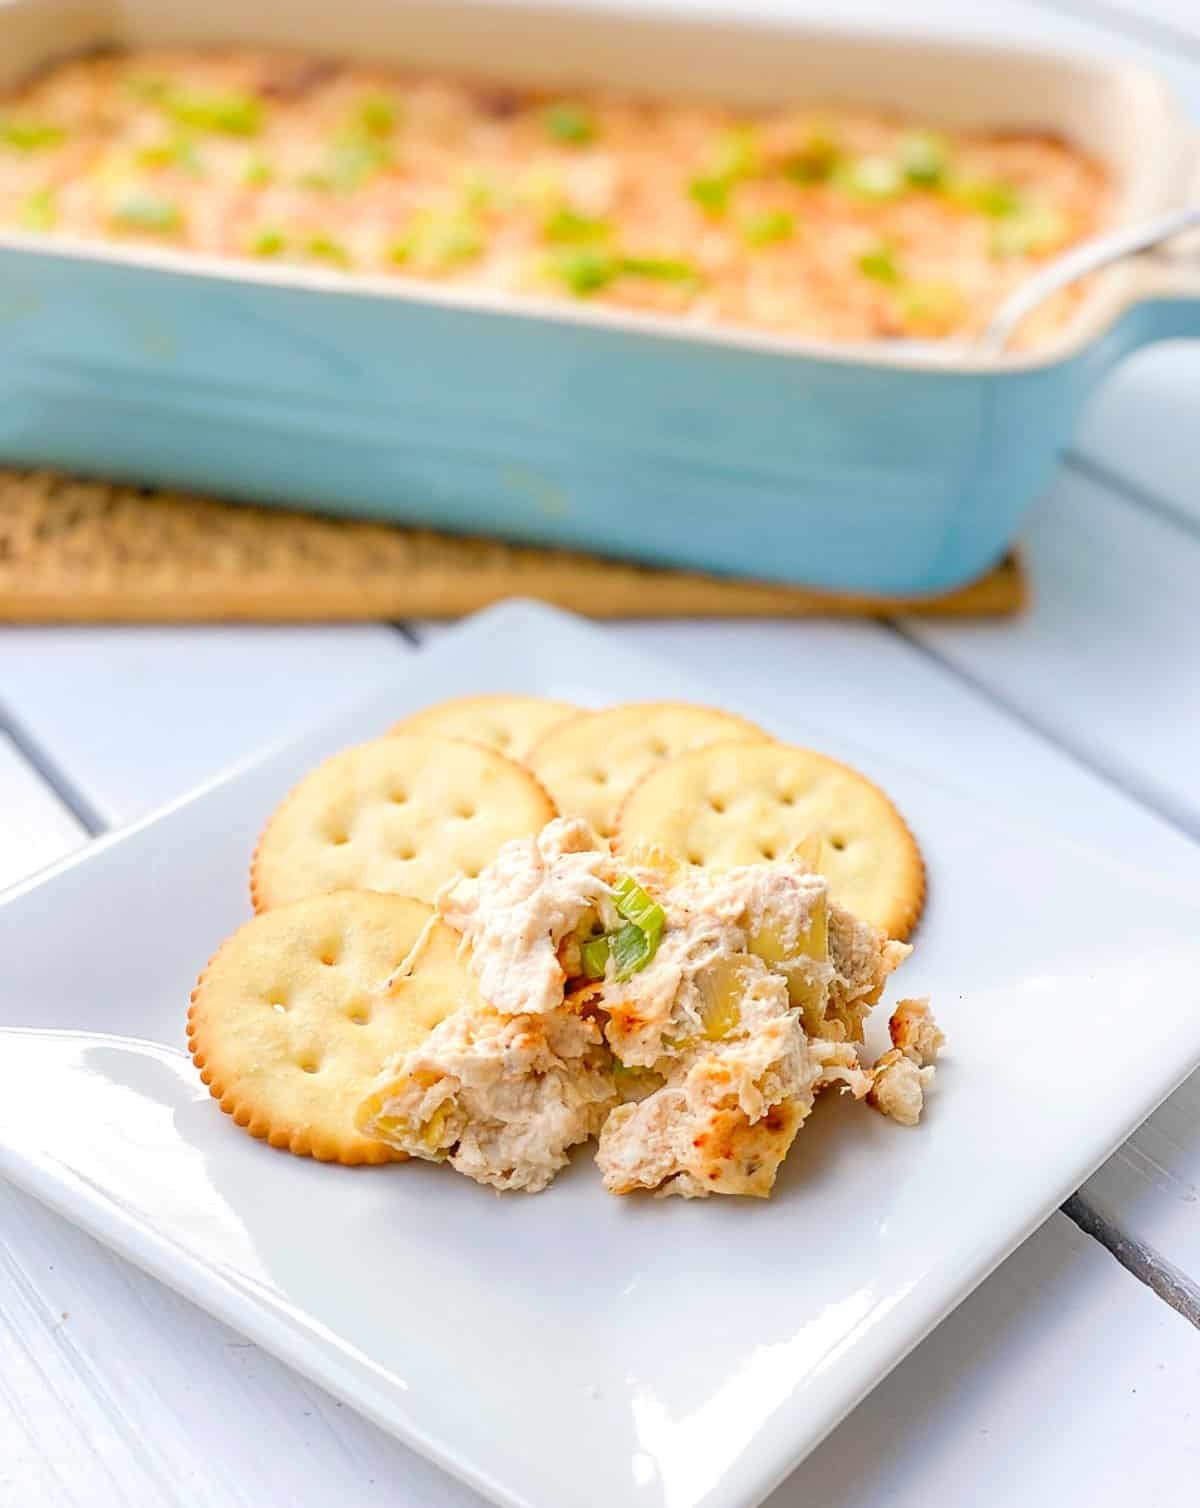 Crab artichoke dip in baking dish and on crackers on a plate.